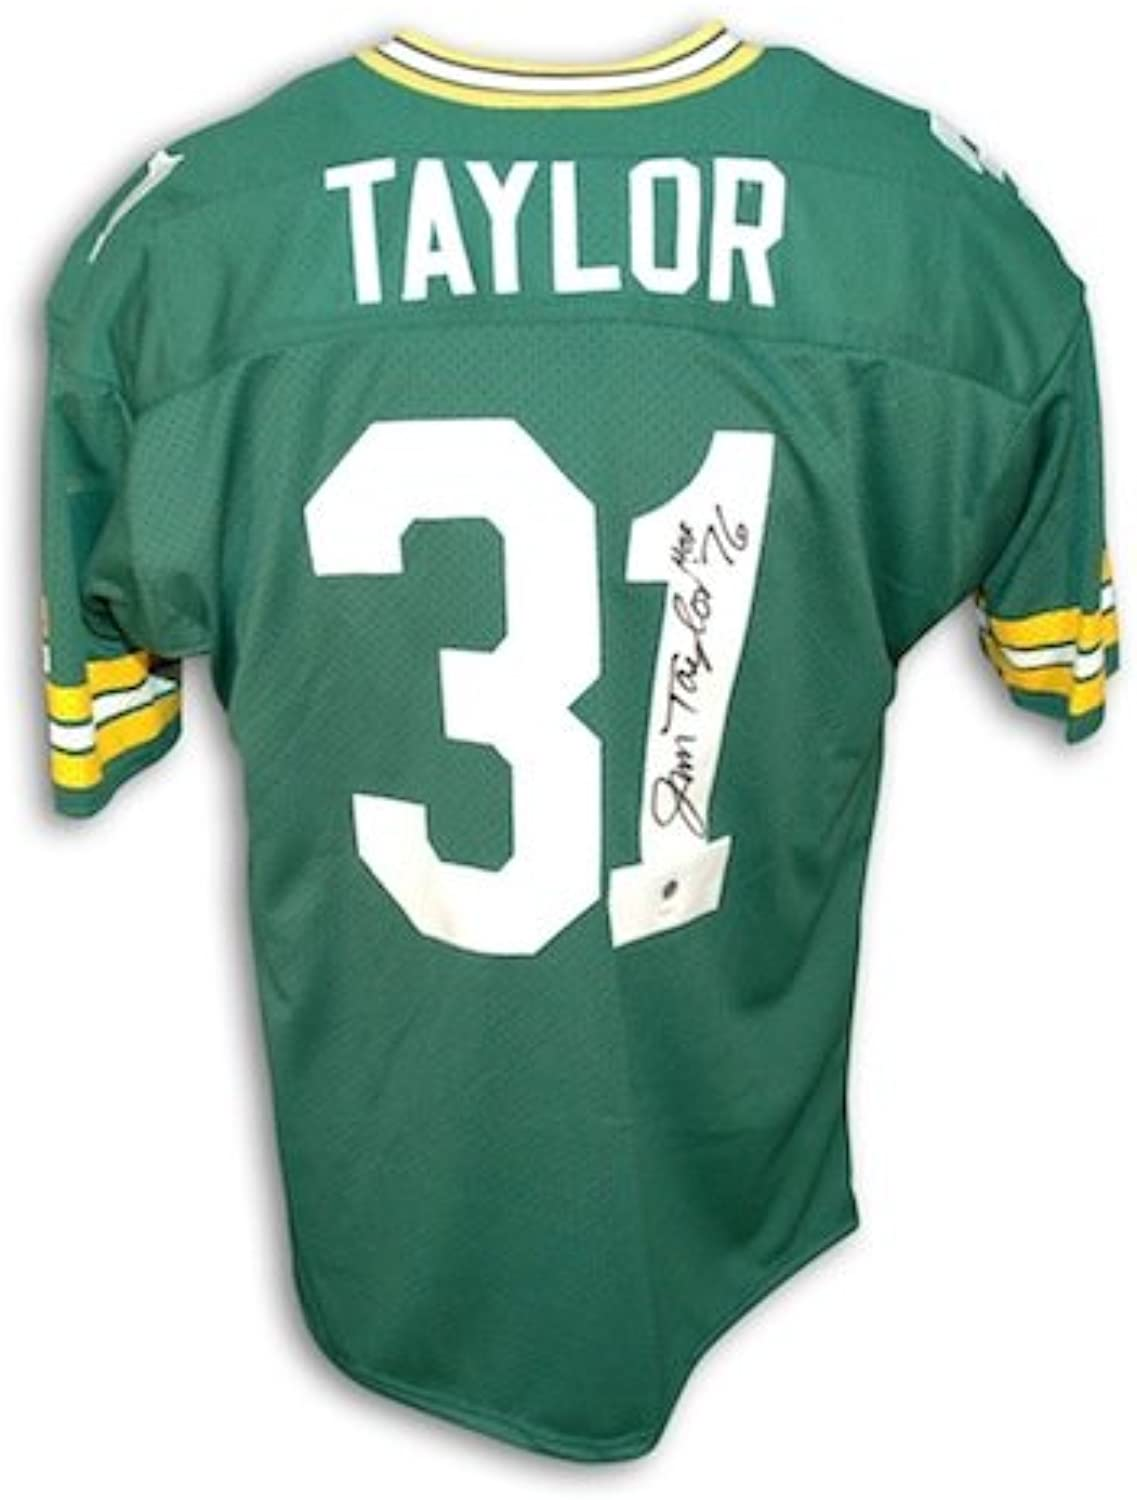 Autographed Jim Taylor Green Bay Packers Green Throwback Jersey Inscribed HOF 76